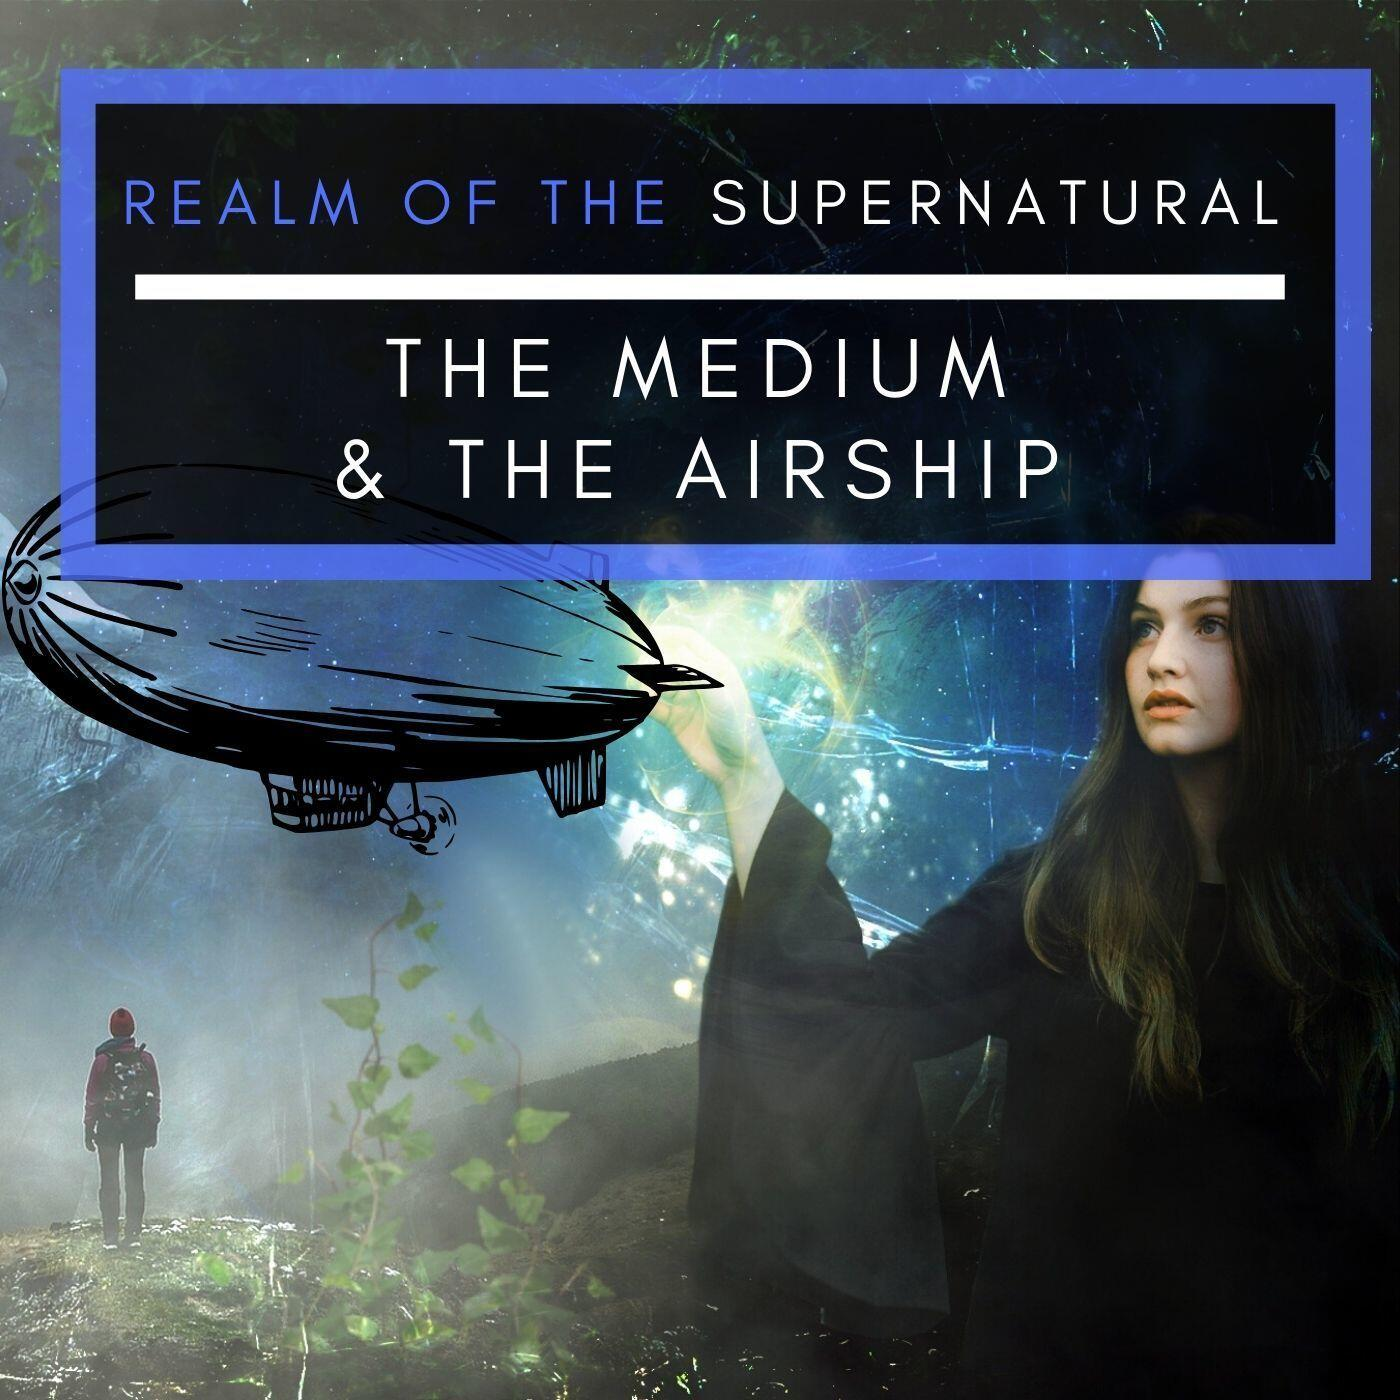 Ep 174 The medium & the airship